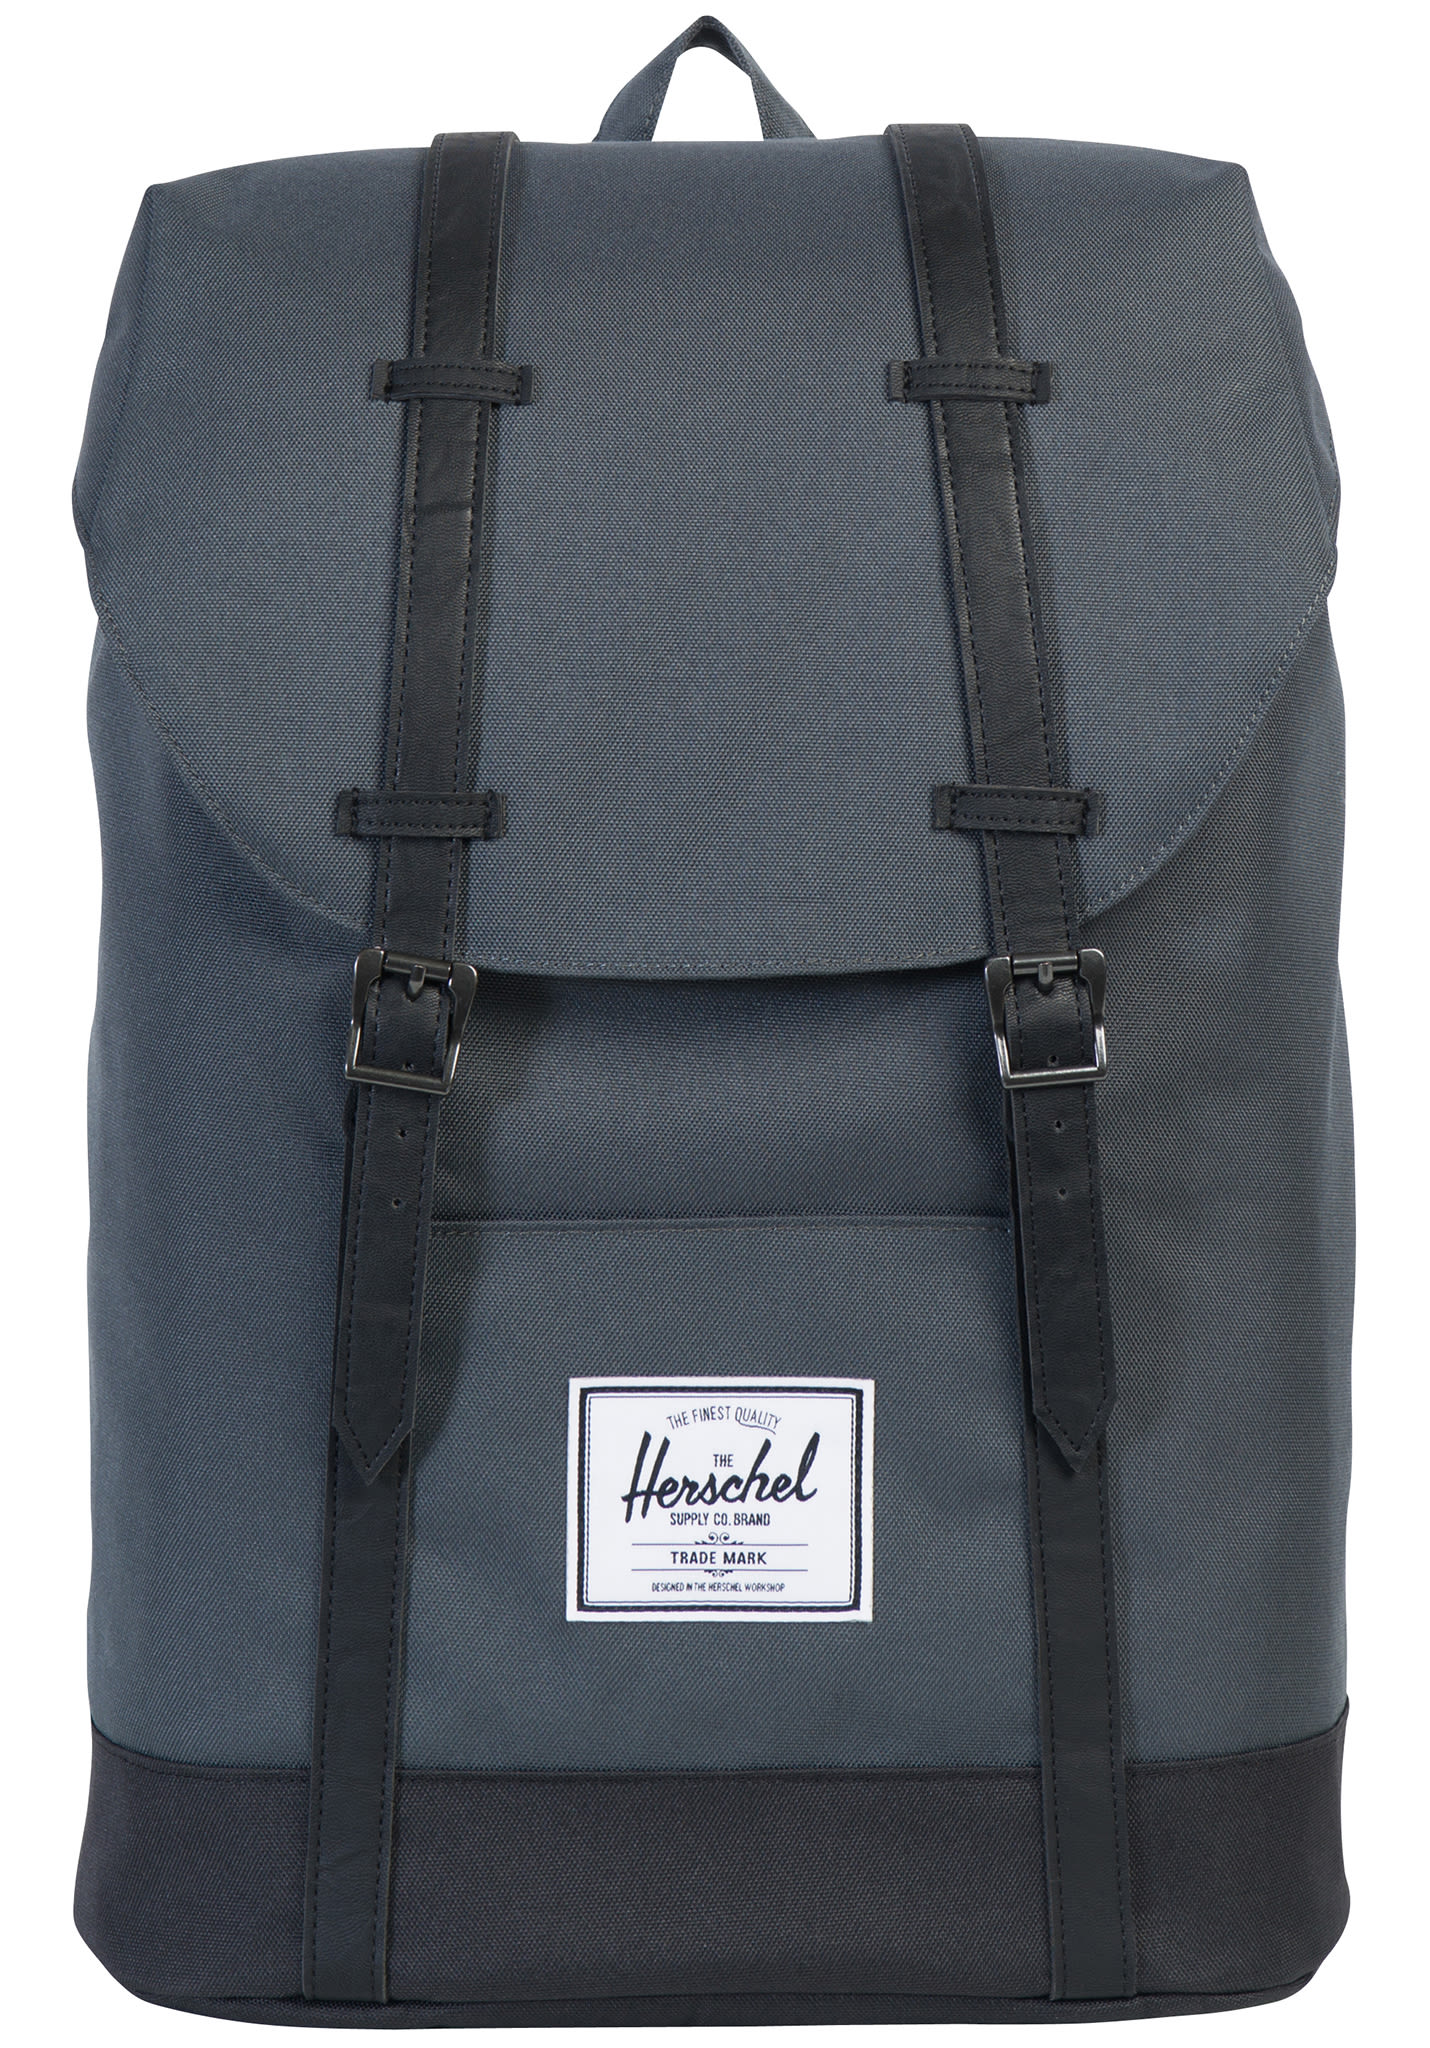 Sac à dos à sangles Herschel Retreat Dark Shadow/Black/Black gris 2VVpmv3dhh